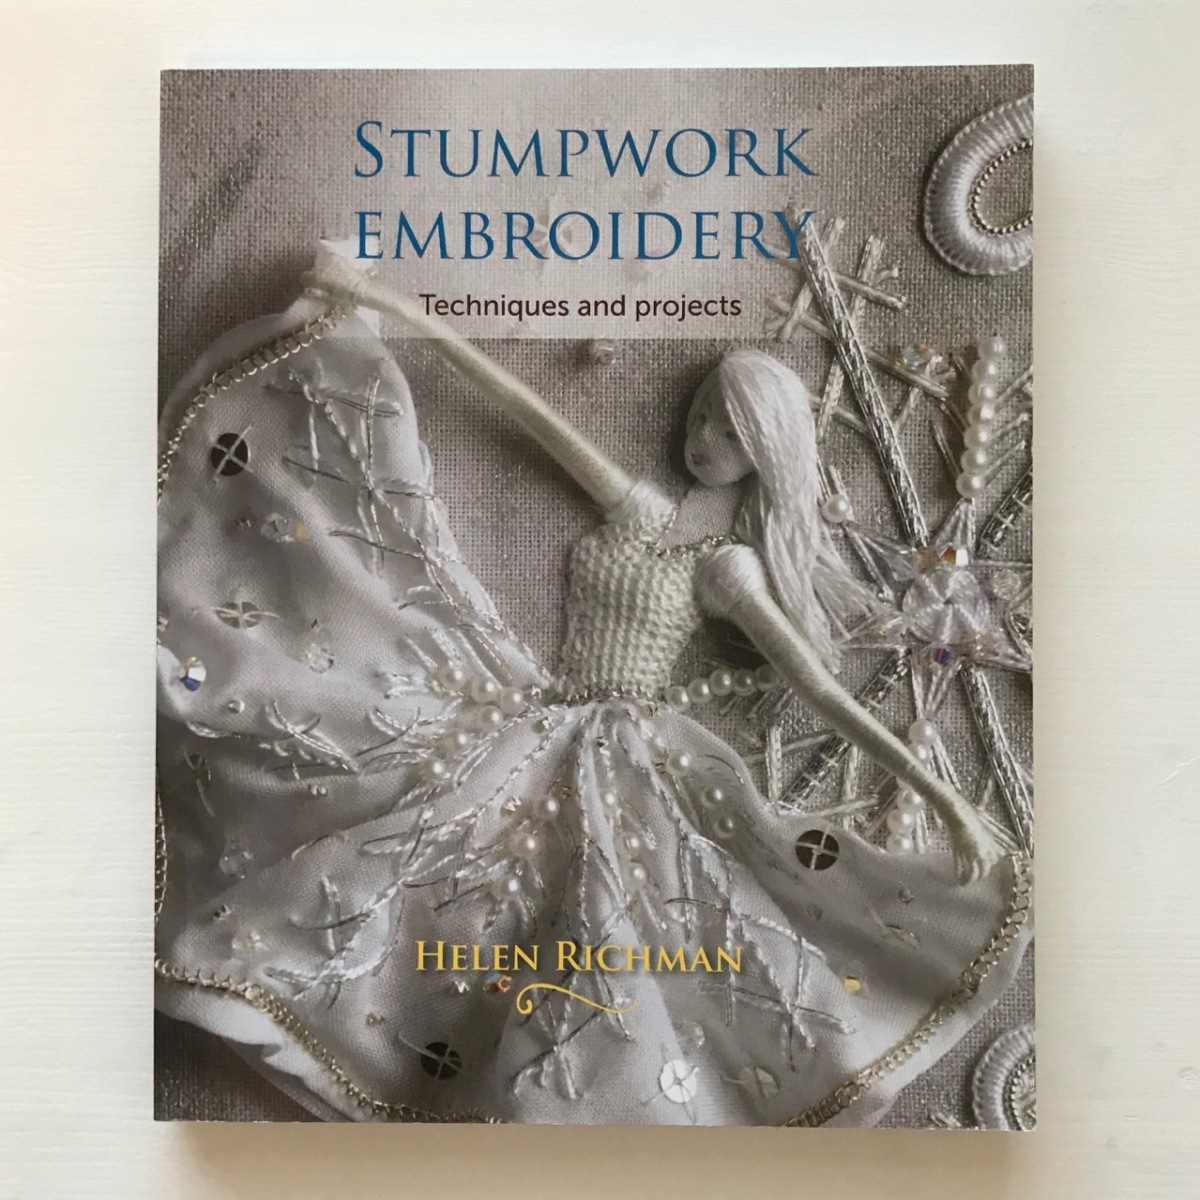 Helen Richman's 'Stumpwork Embroidery'